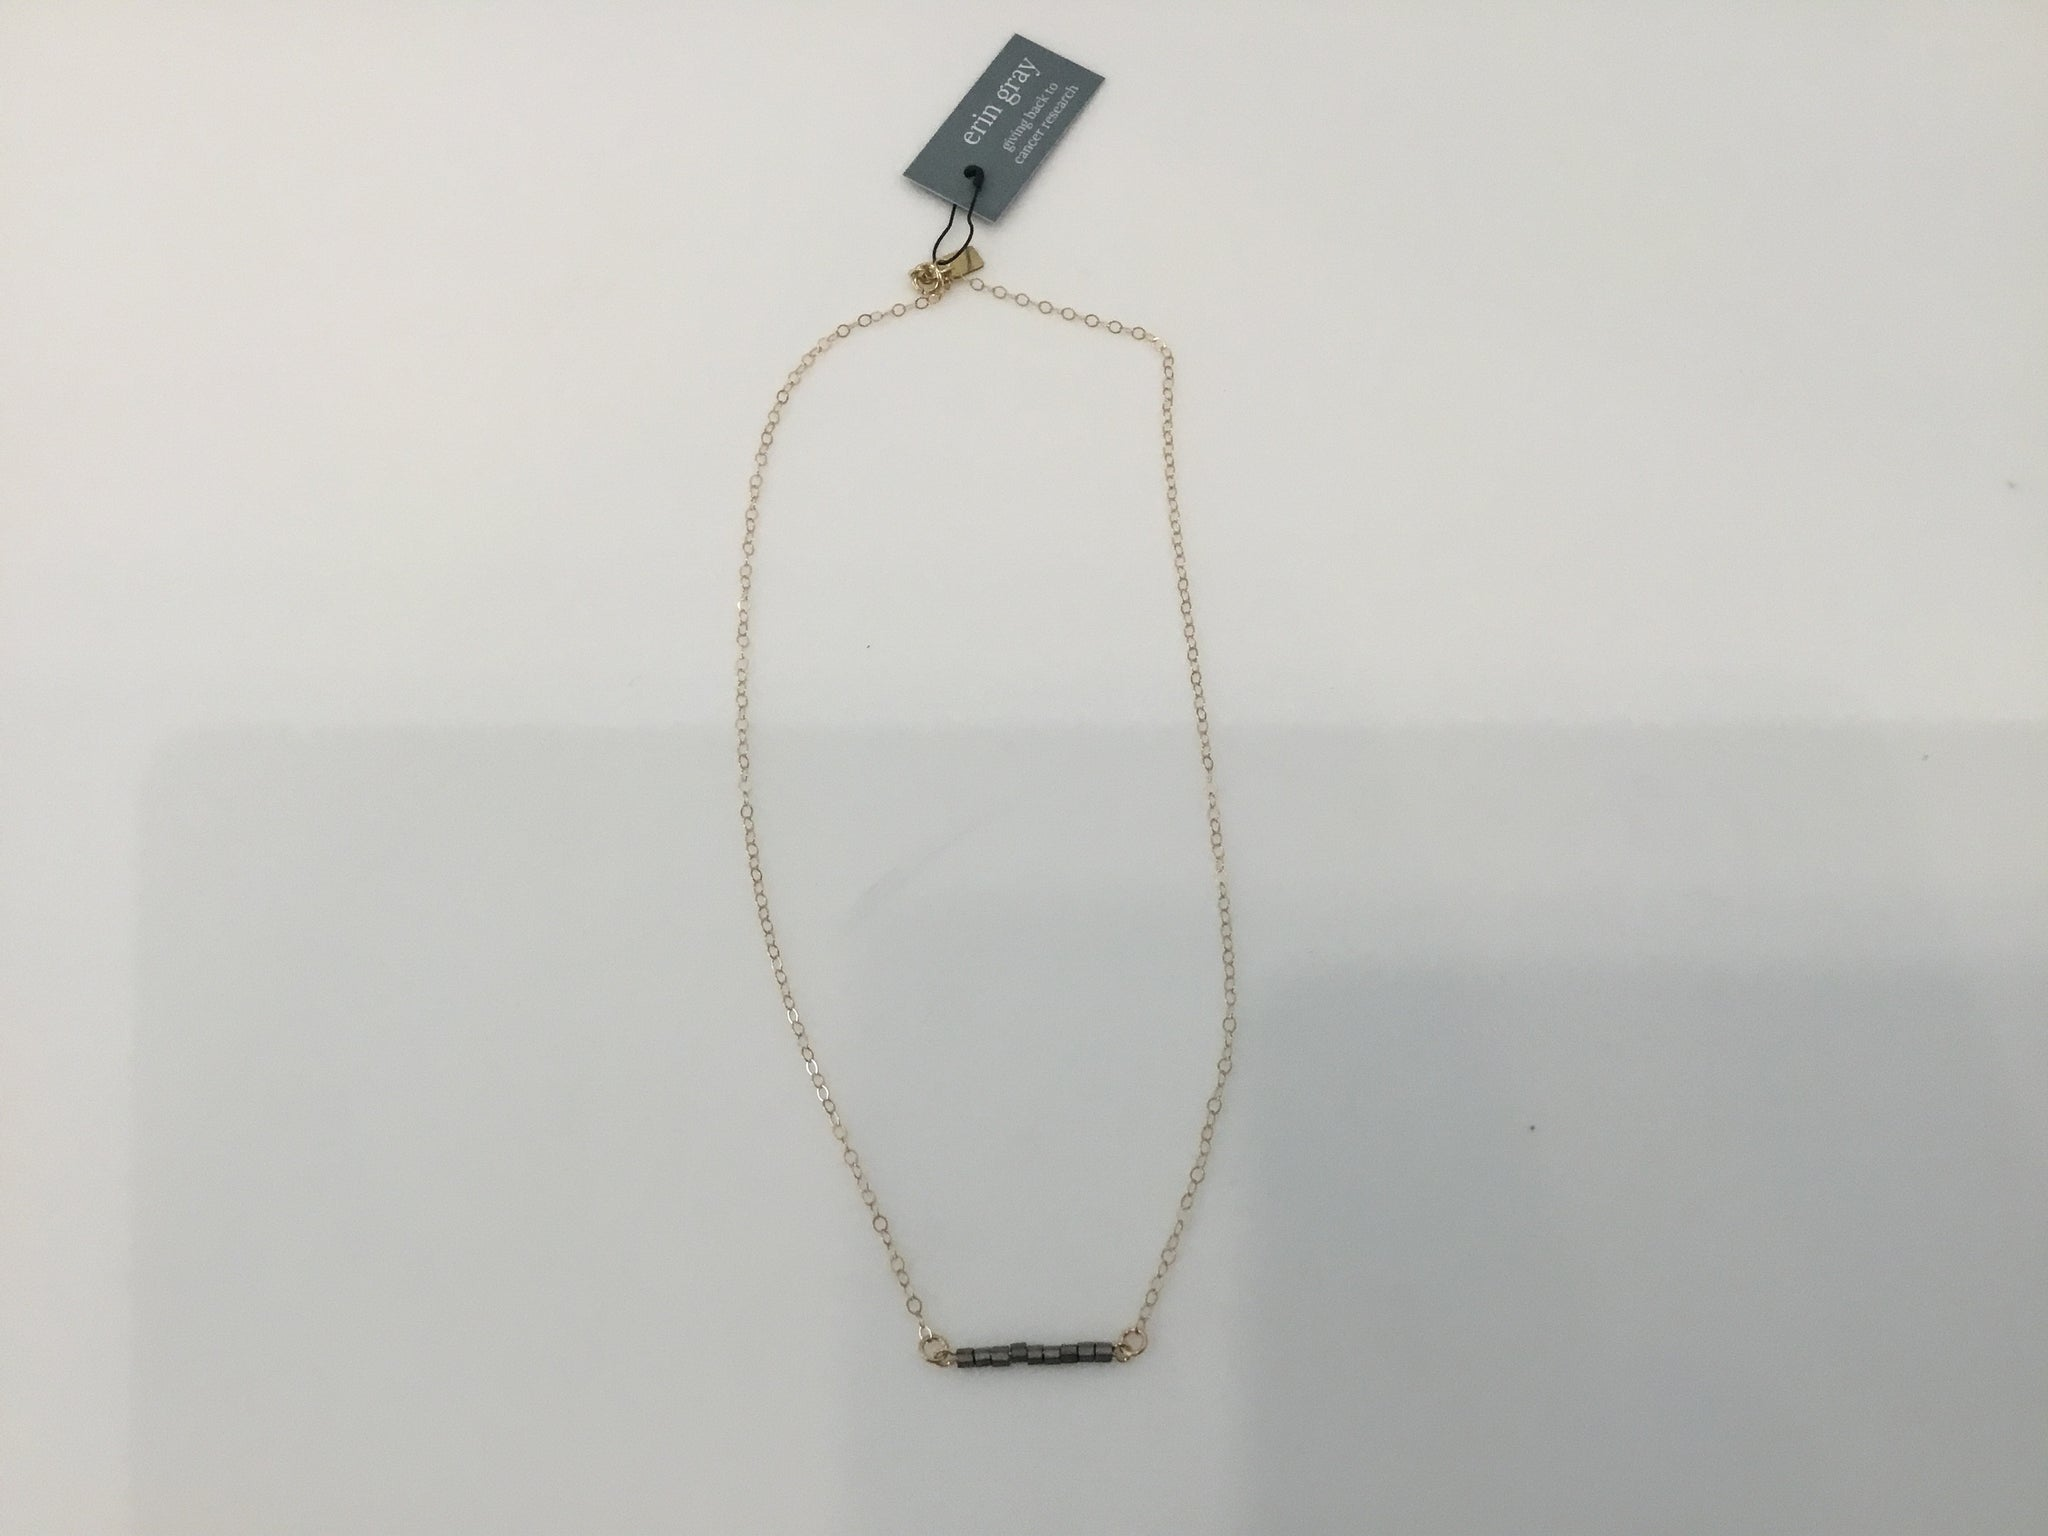 Platinum bar necklace